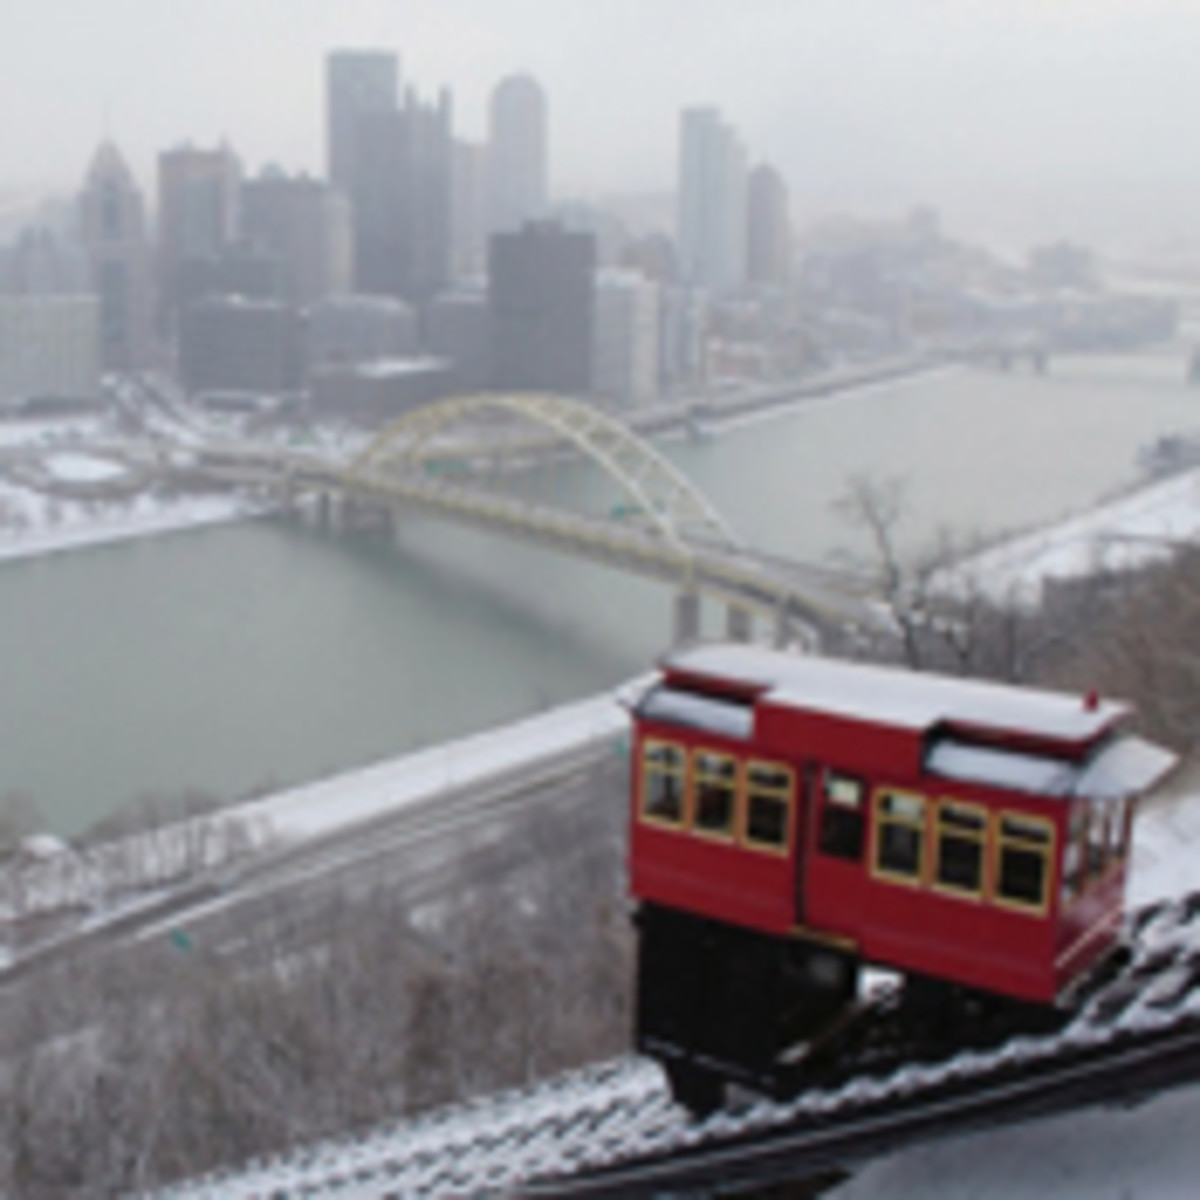 The Duquesne Incline in Pittsburgh